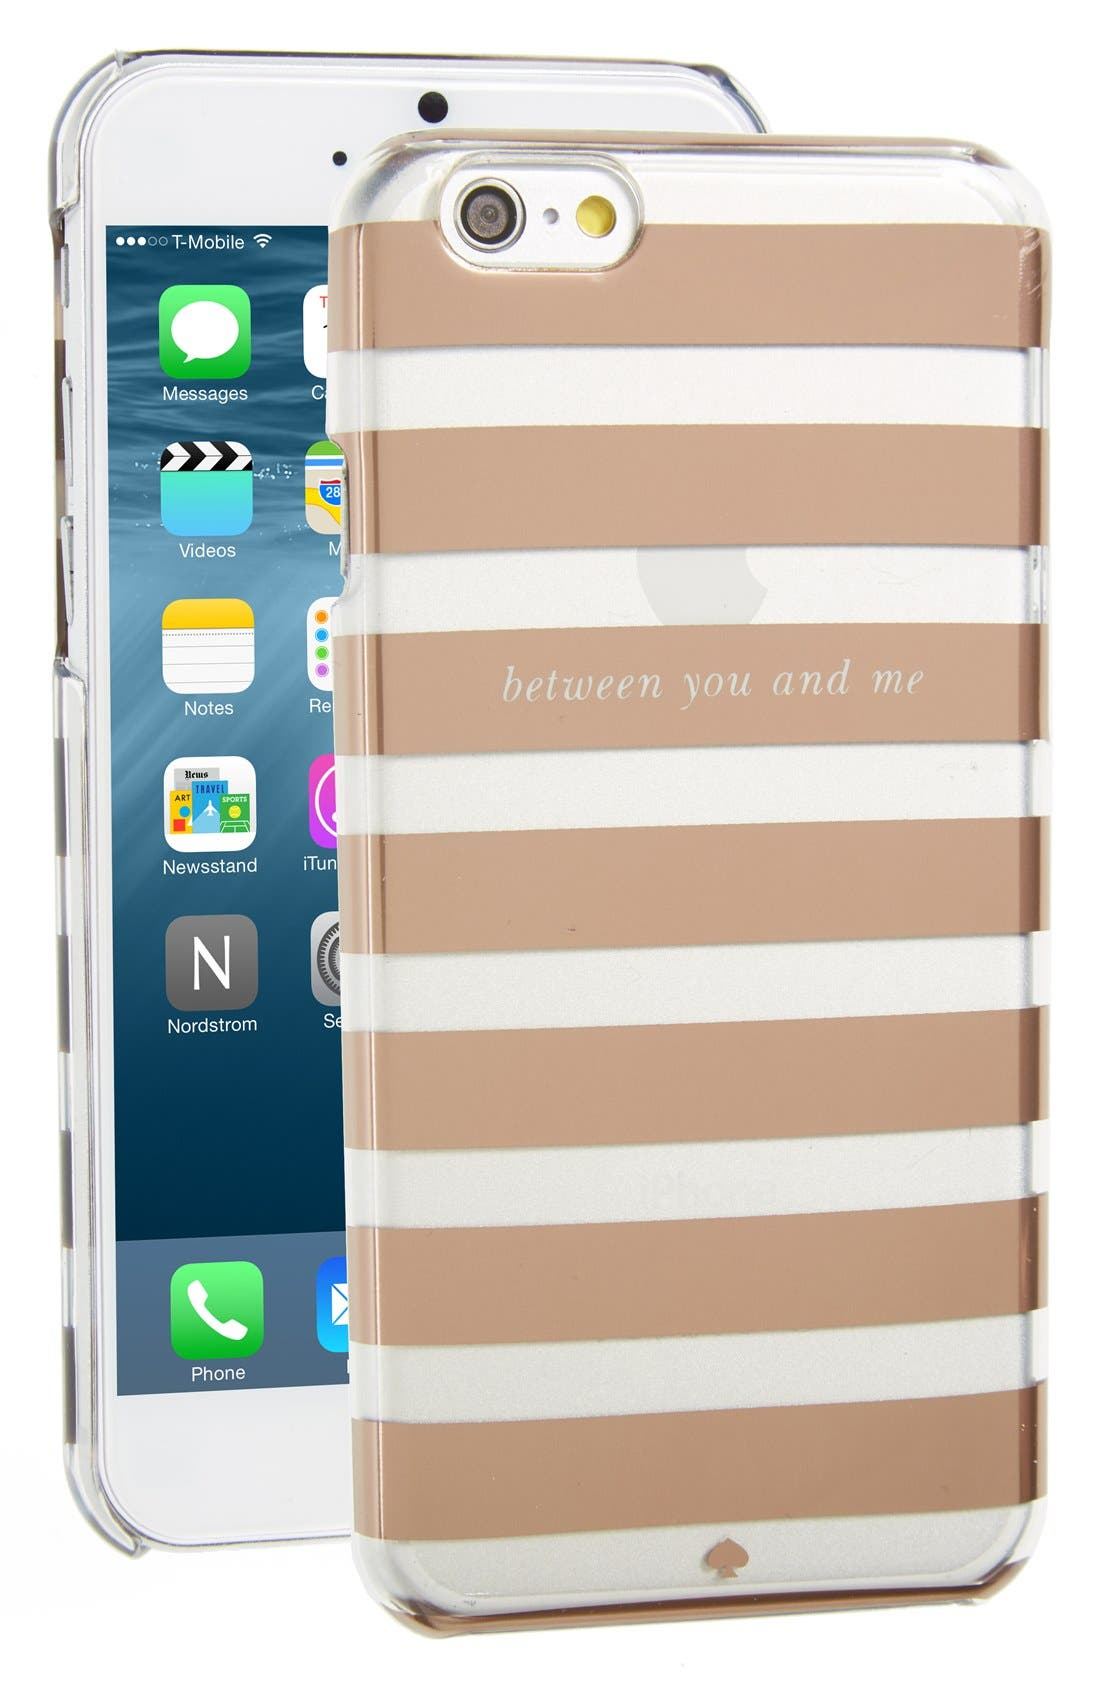 Alternate Image 1 Selected - kate spade new york 'between you and me' iPhone6 case